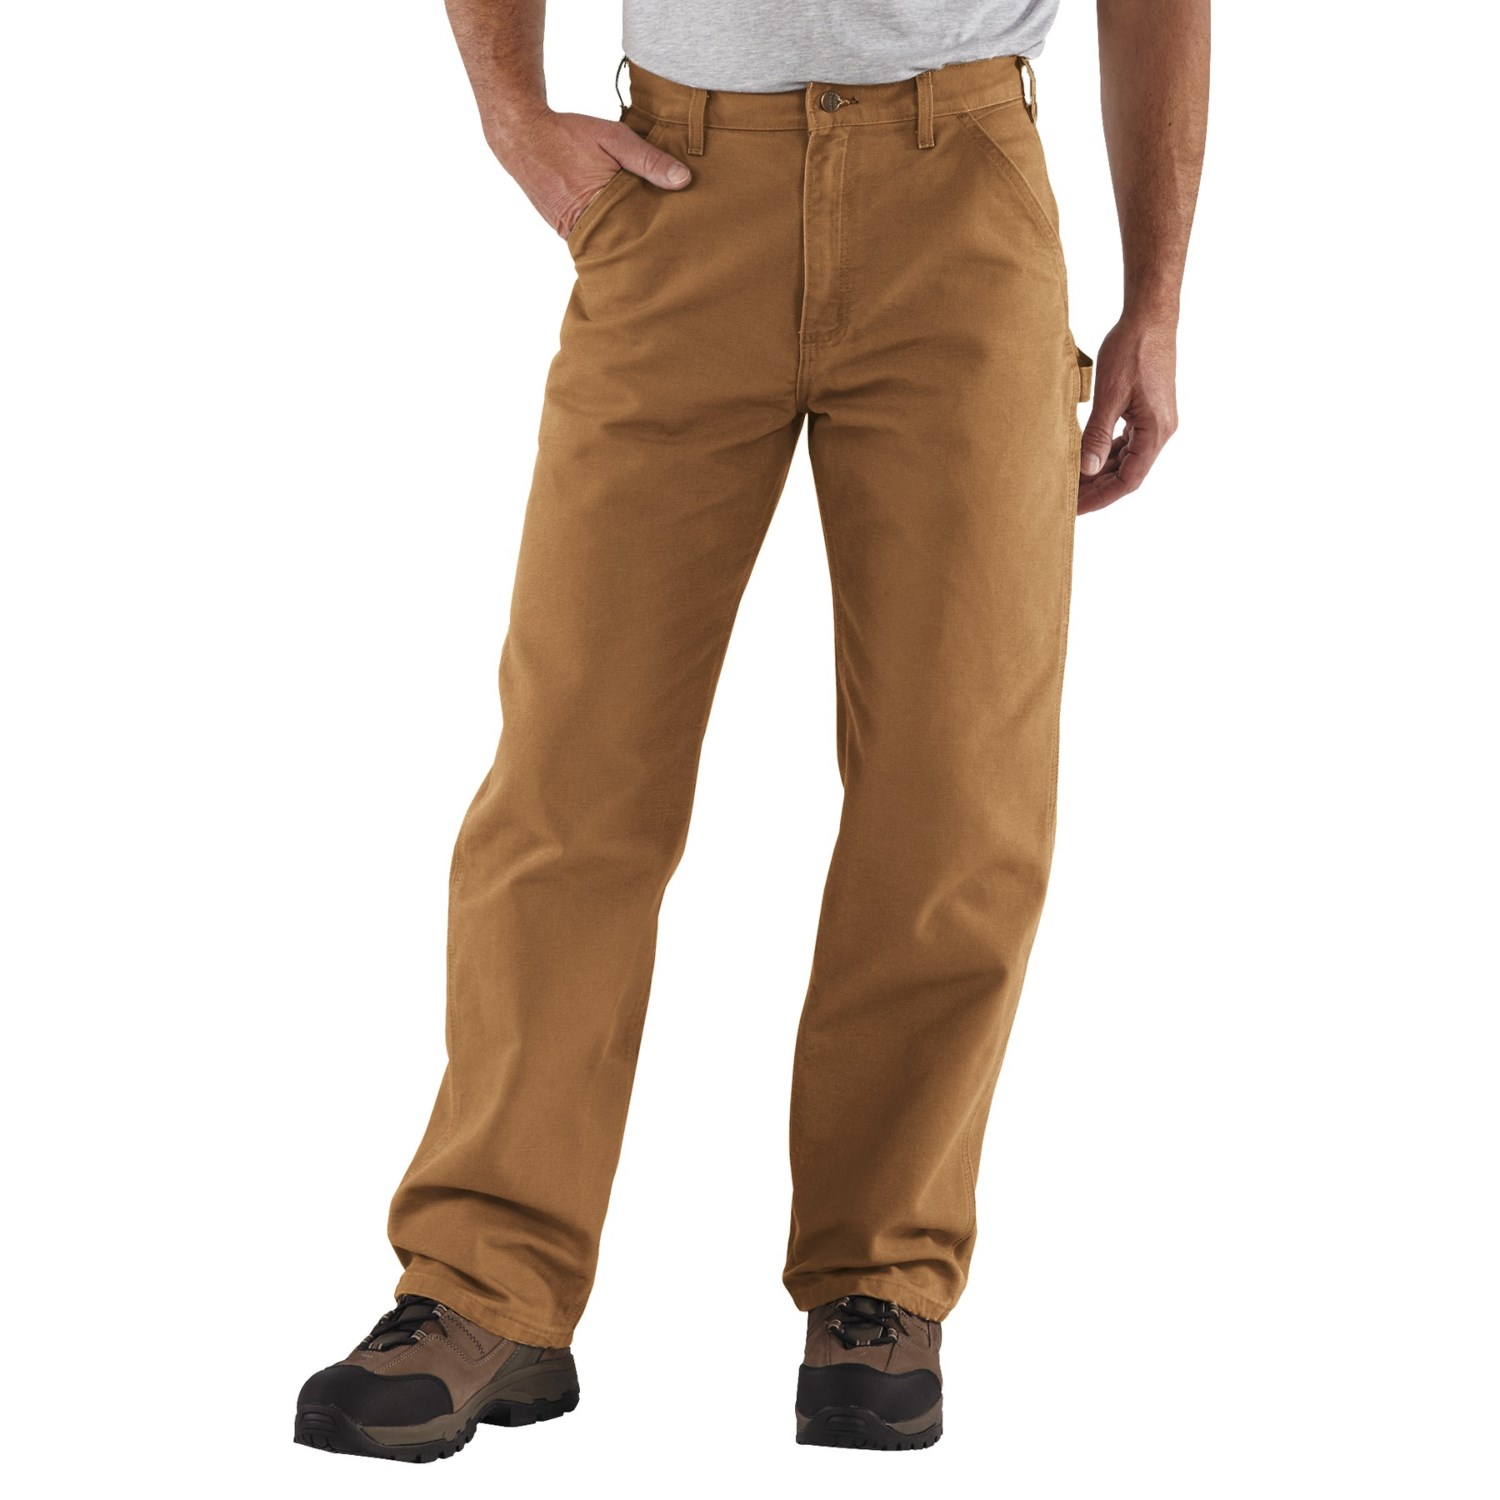 Free shipping and returns on Men's Brown Dress Pants at inerloadsr5s.gq